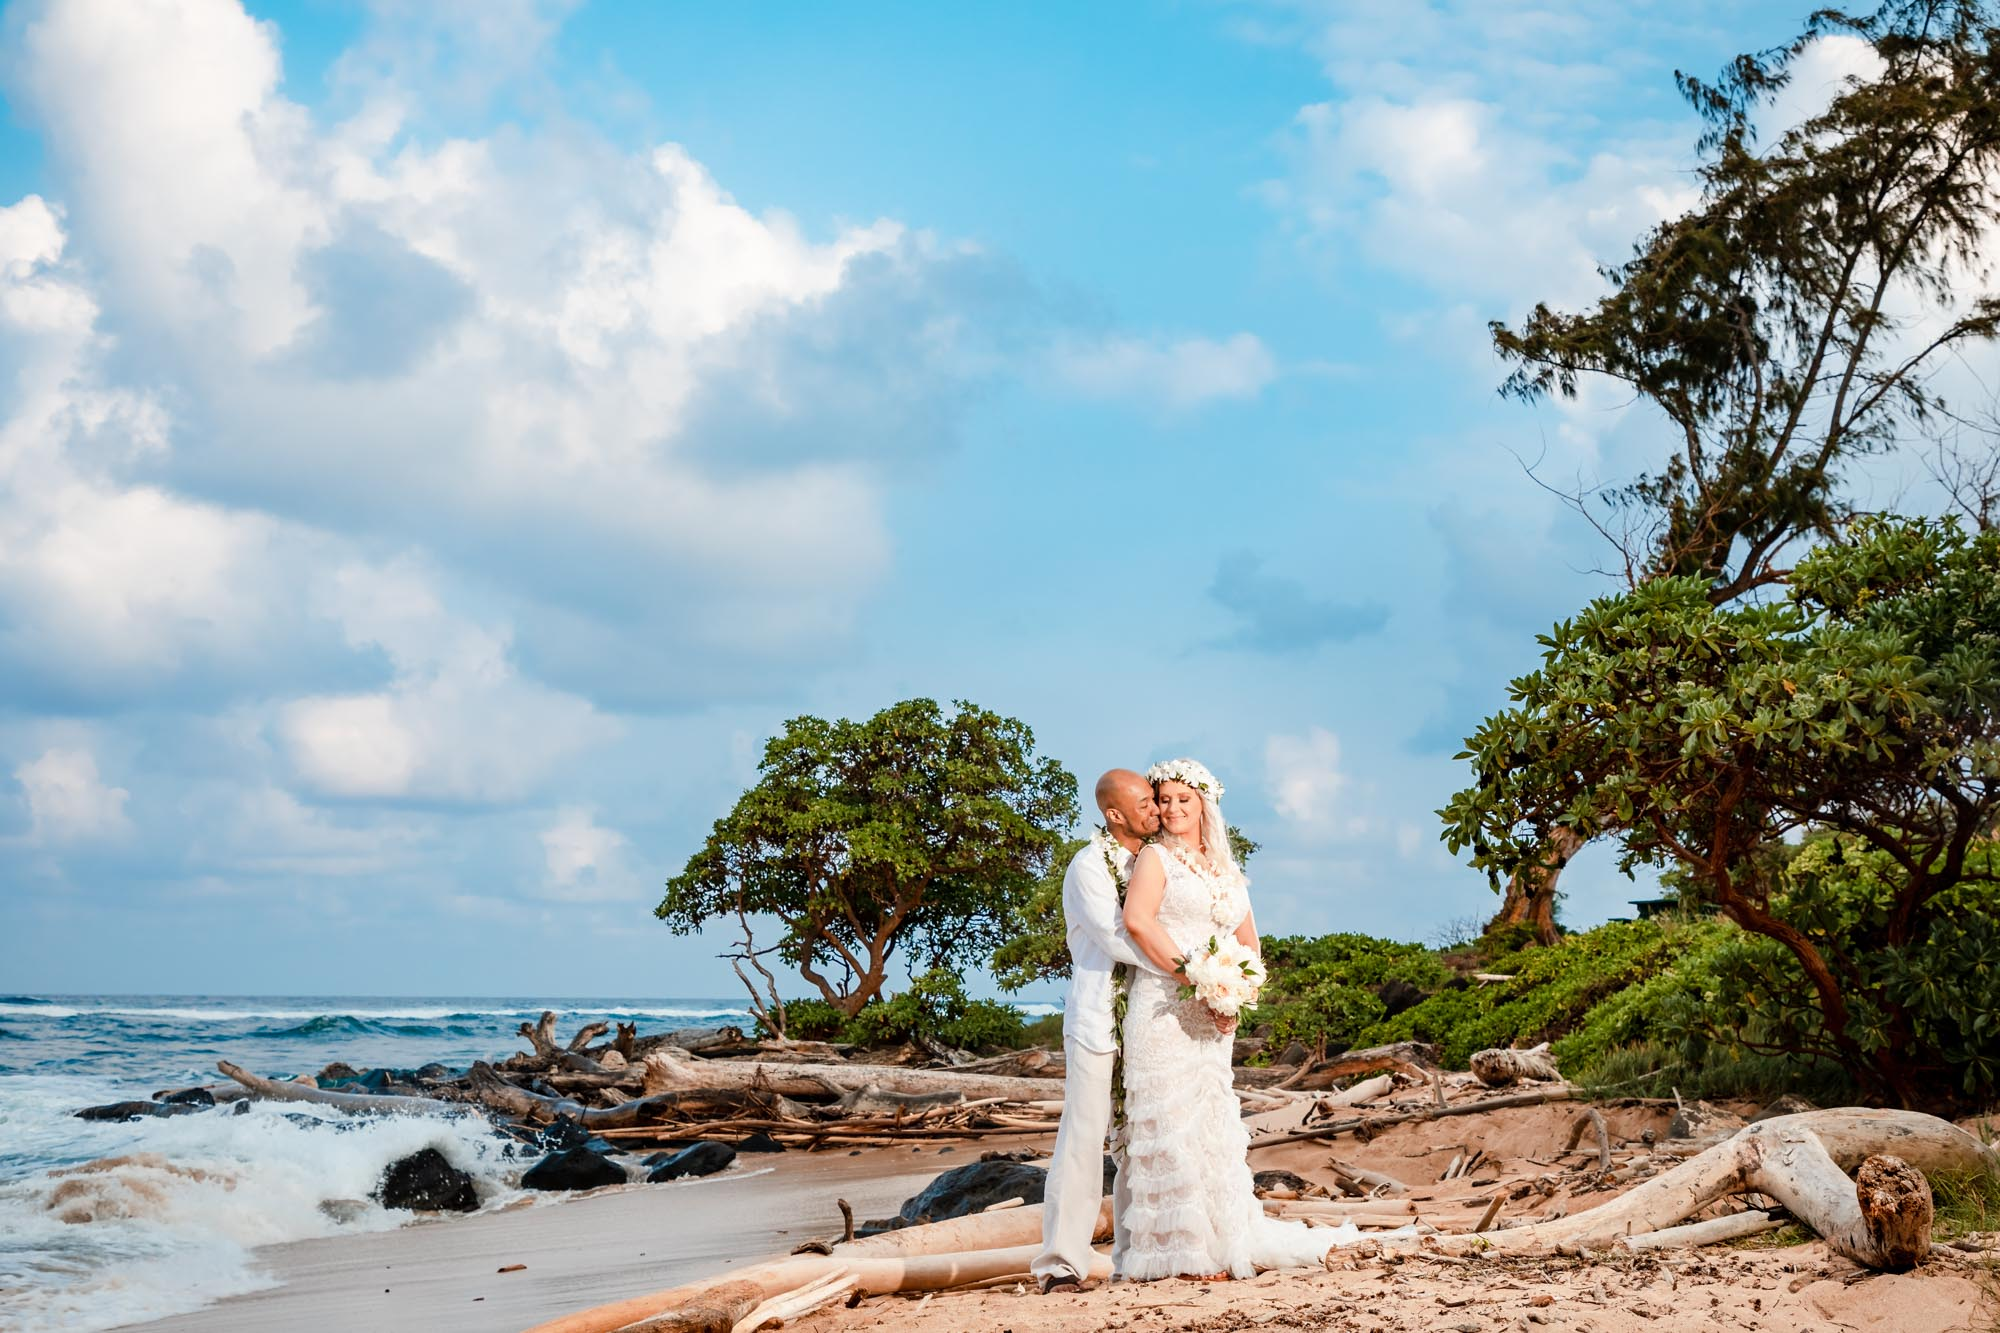 bride groom wedding portraits sunset beach kauai hawaii